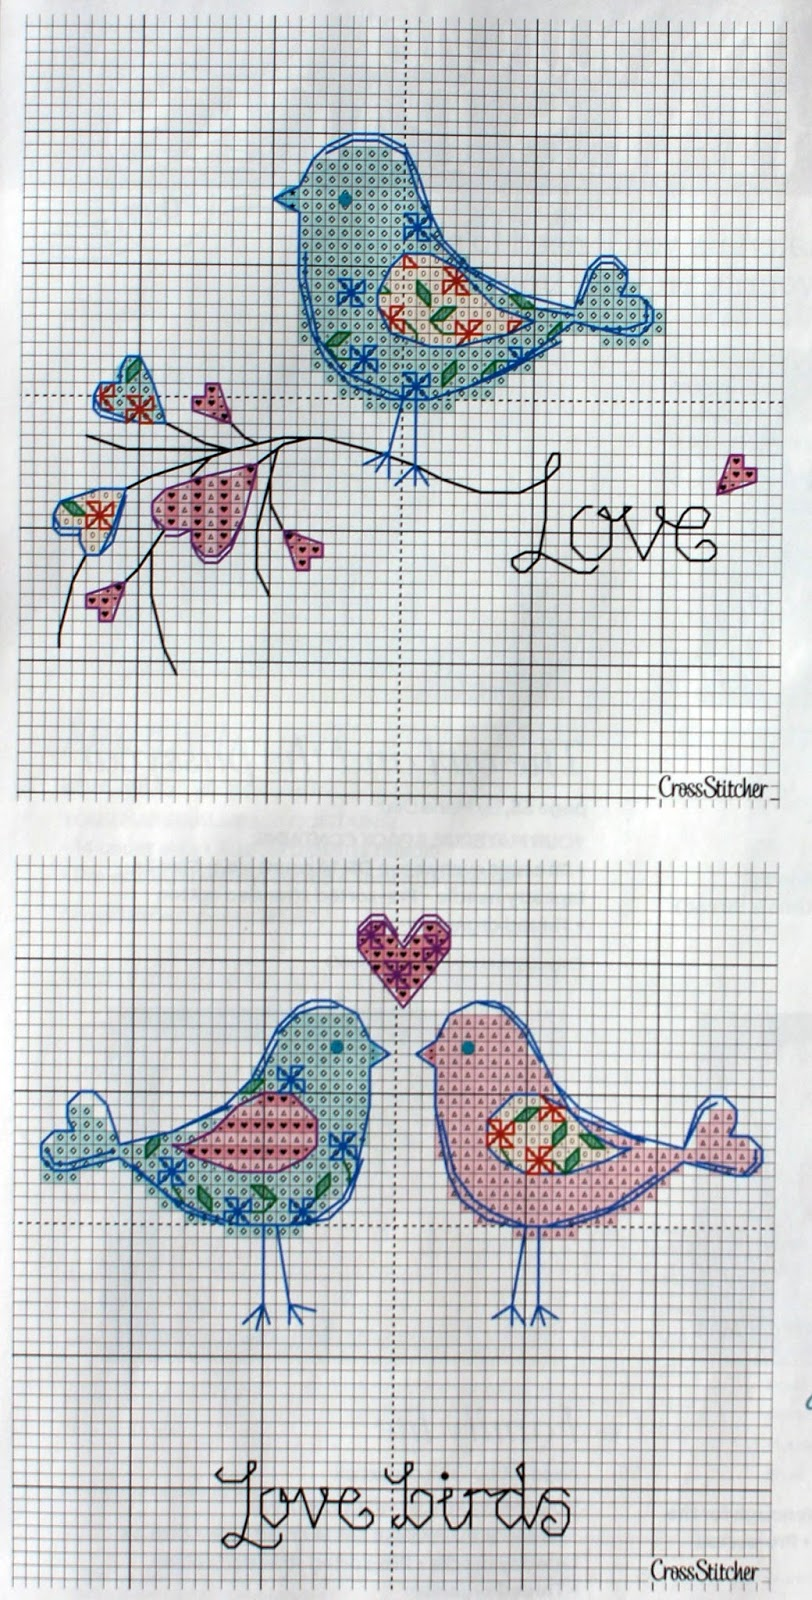 How to Cross Stitch : How to Do Basic Cross Stitches